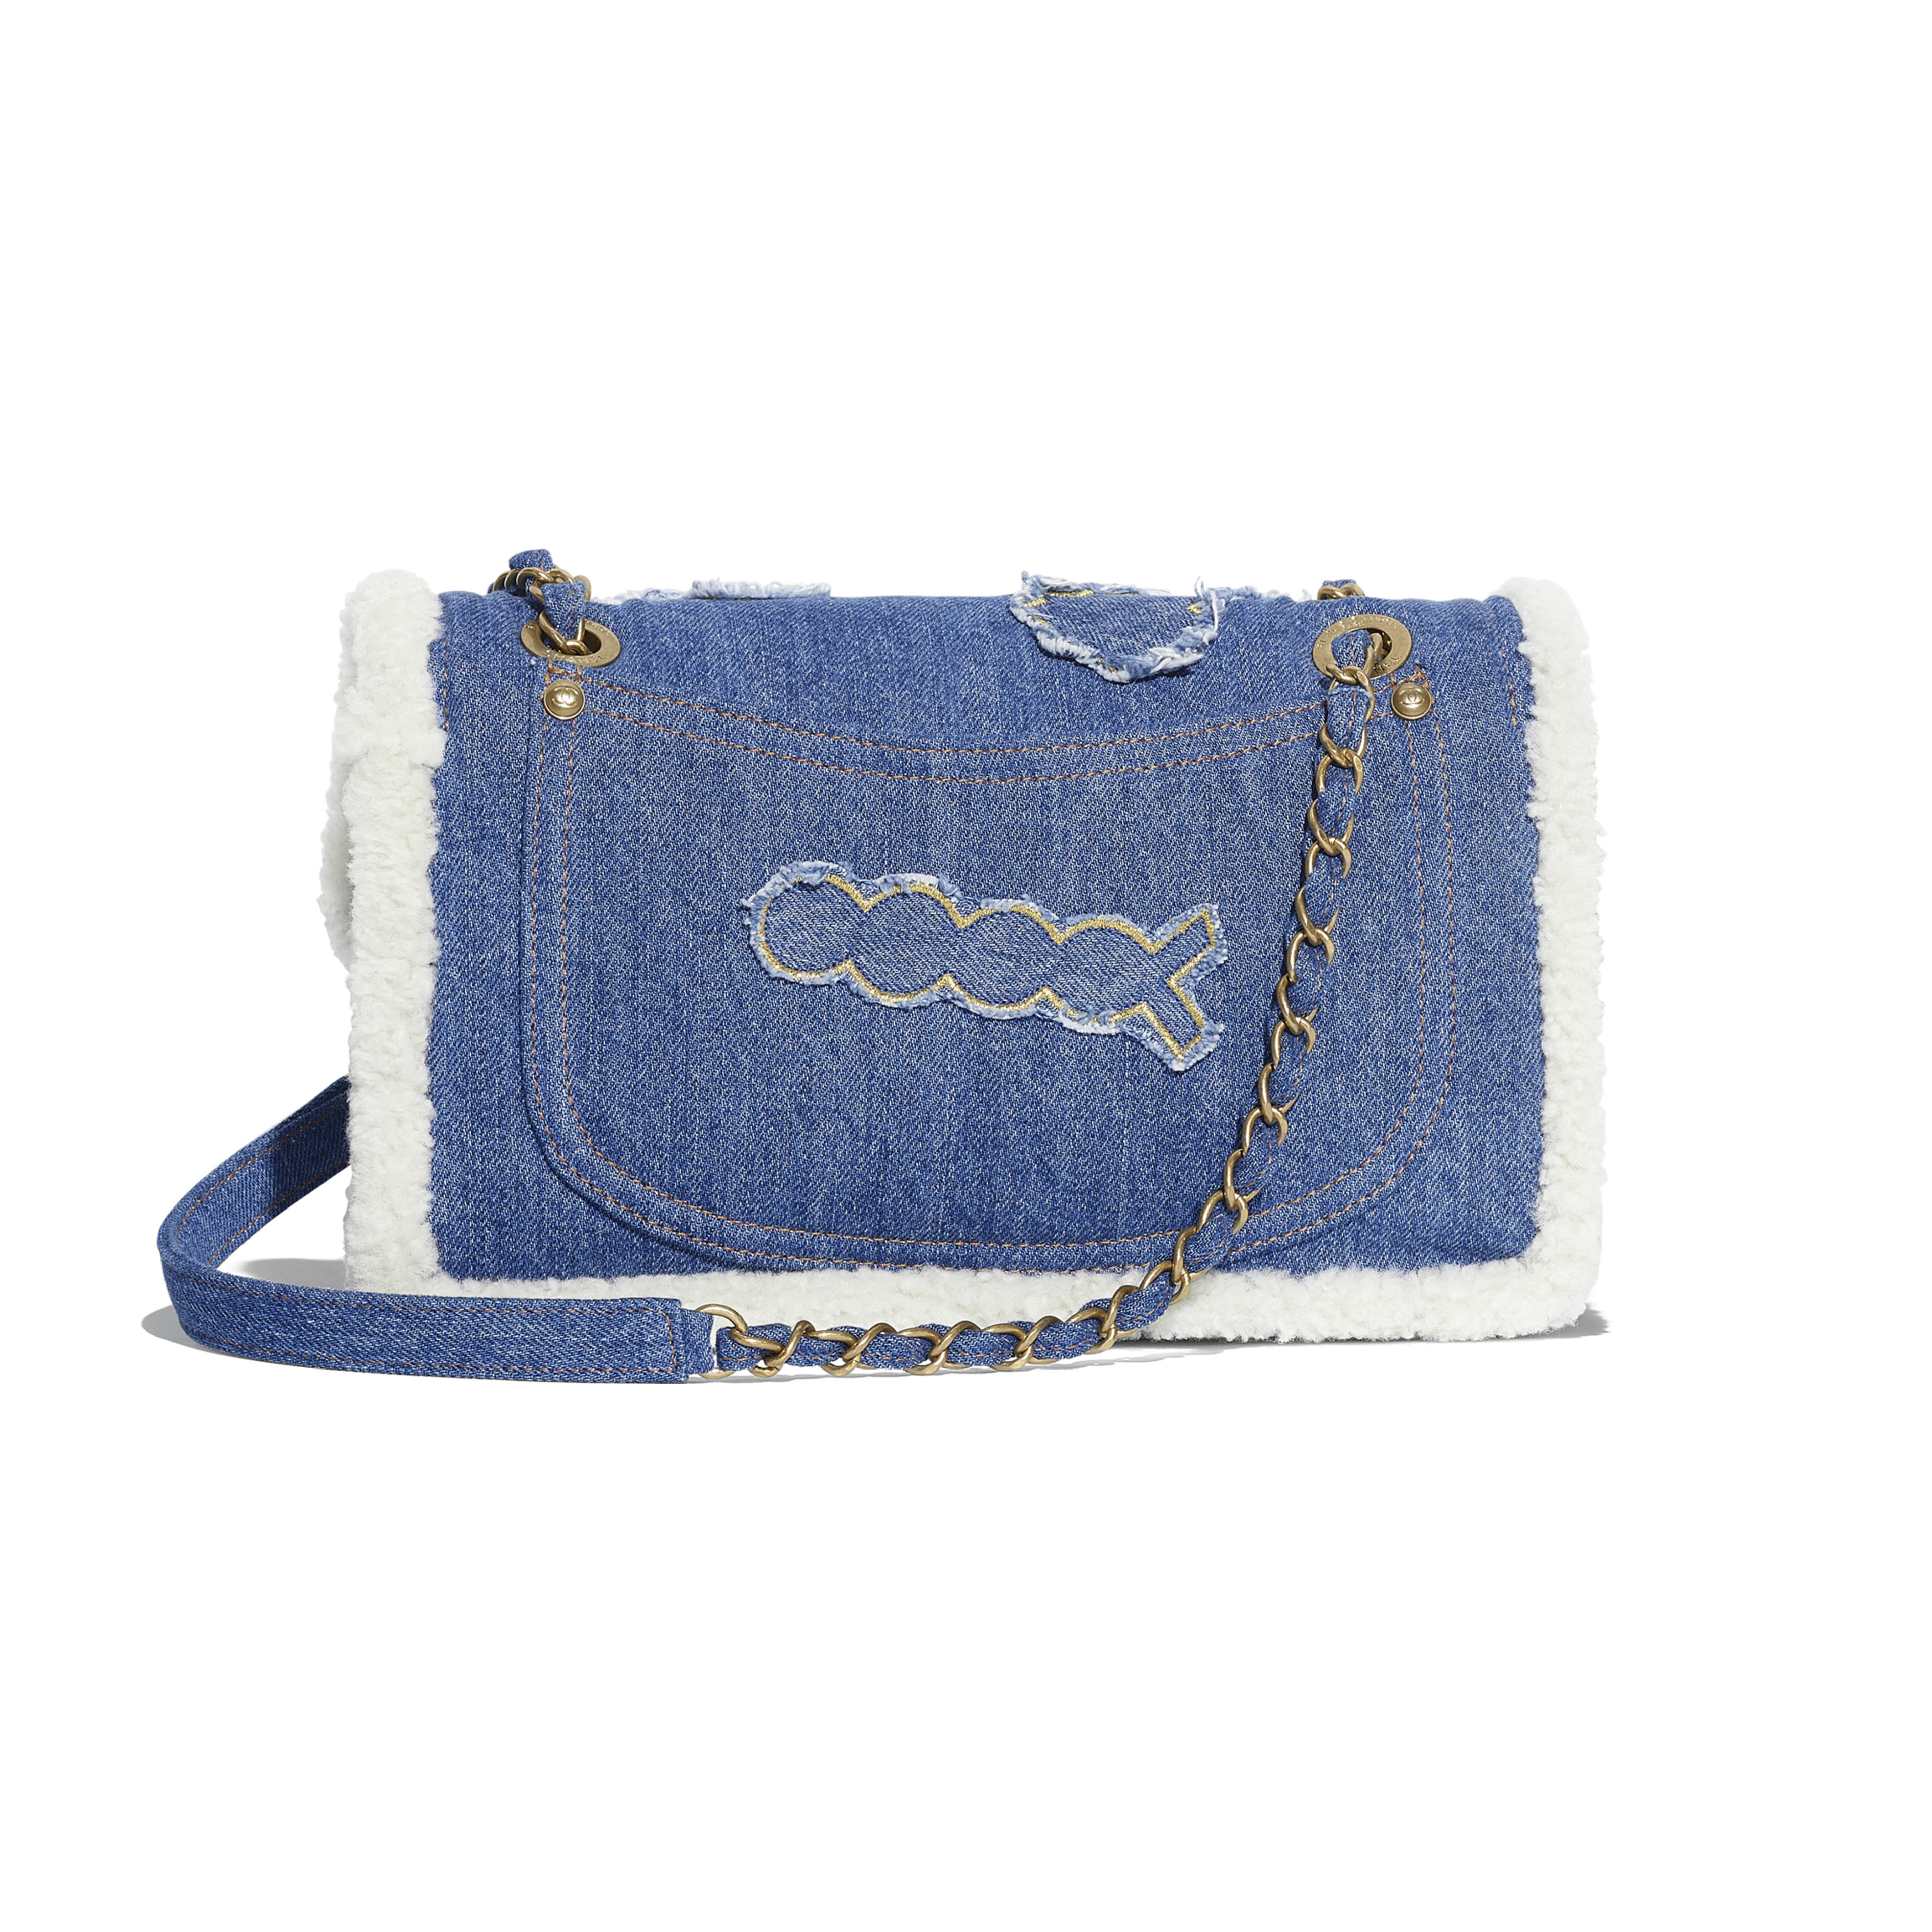 Flap Bag - Light Blue - Cotton, Shearling Sheepskin & Gold-Tone Metal - Alternative view - see full sized version